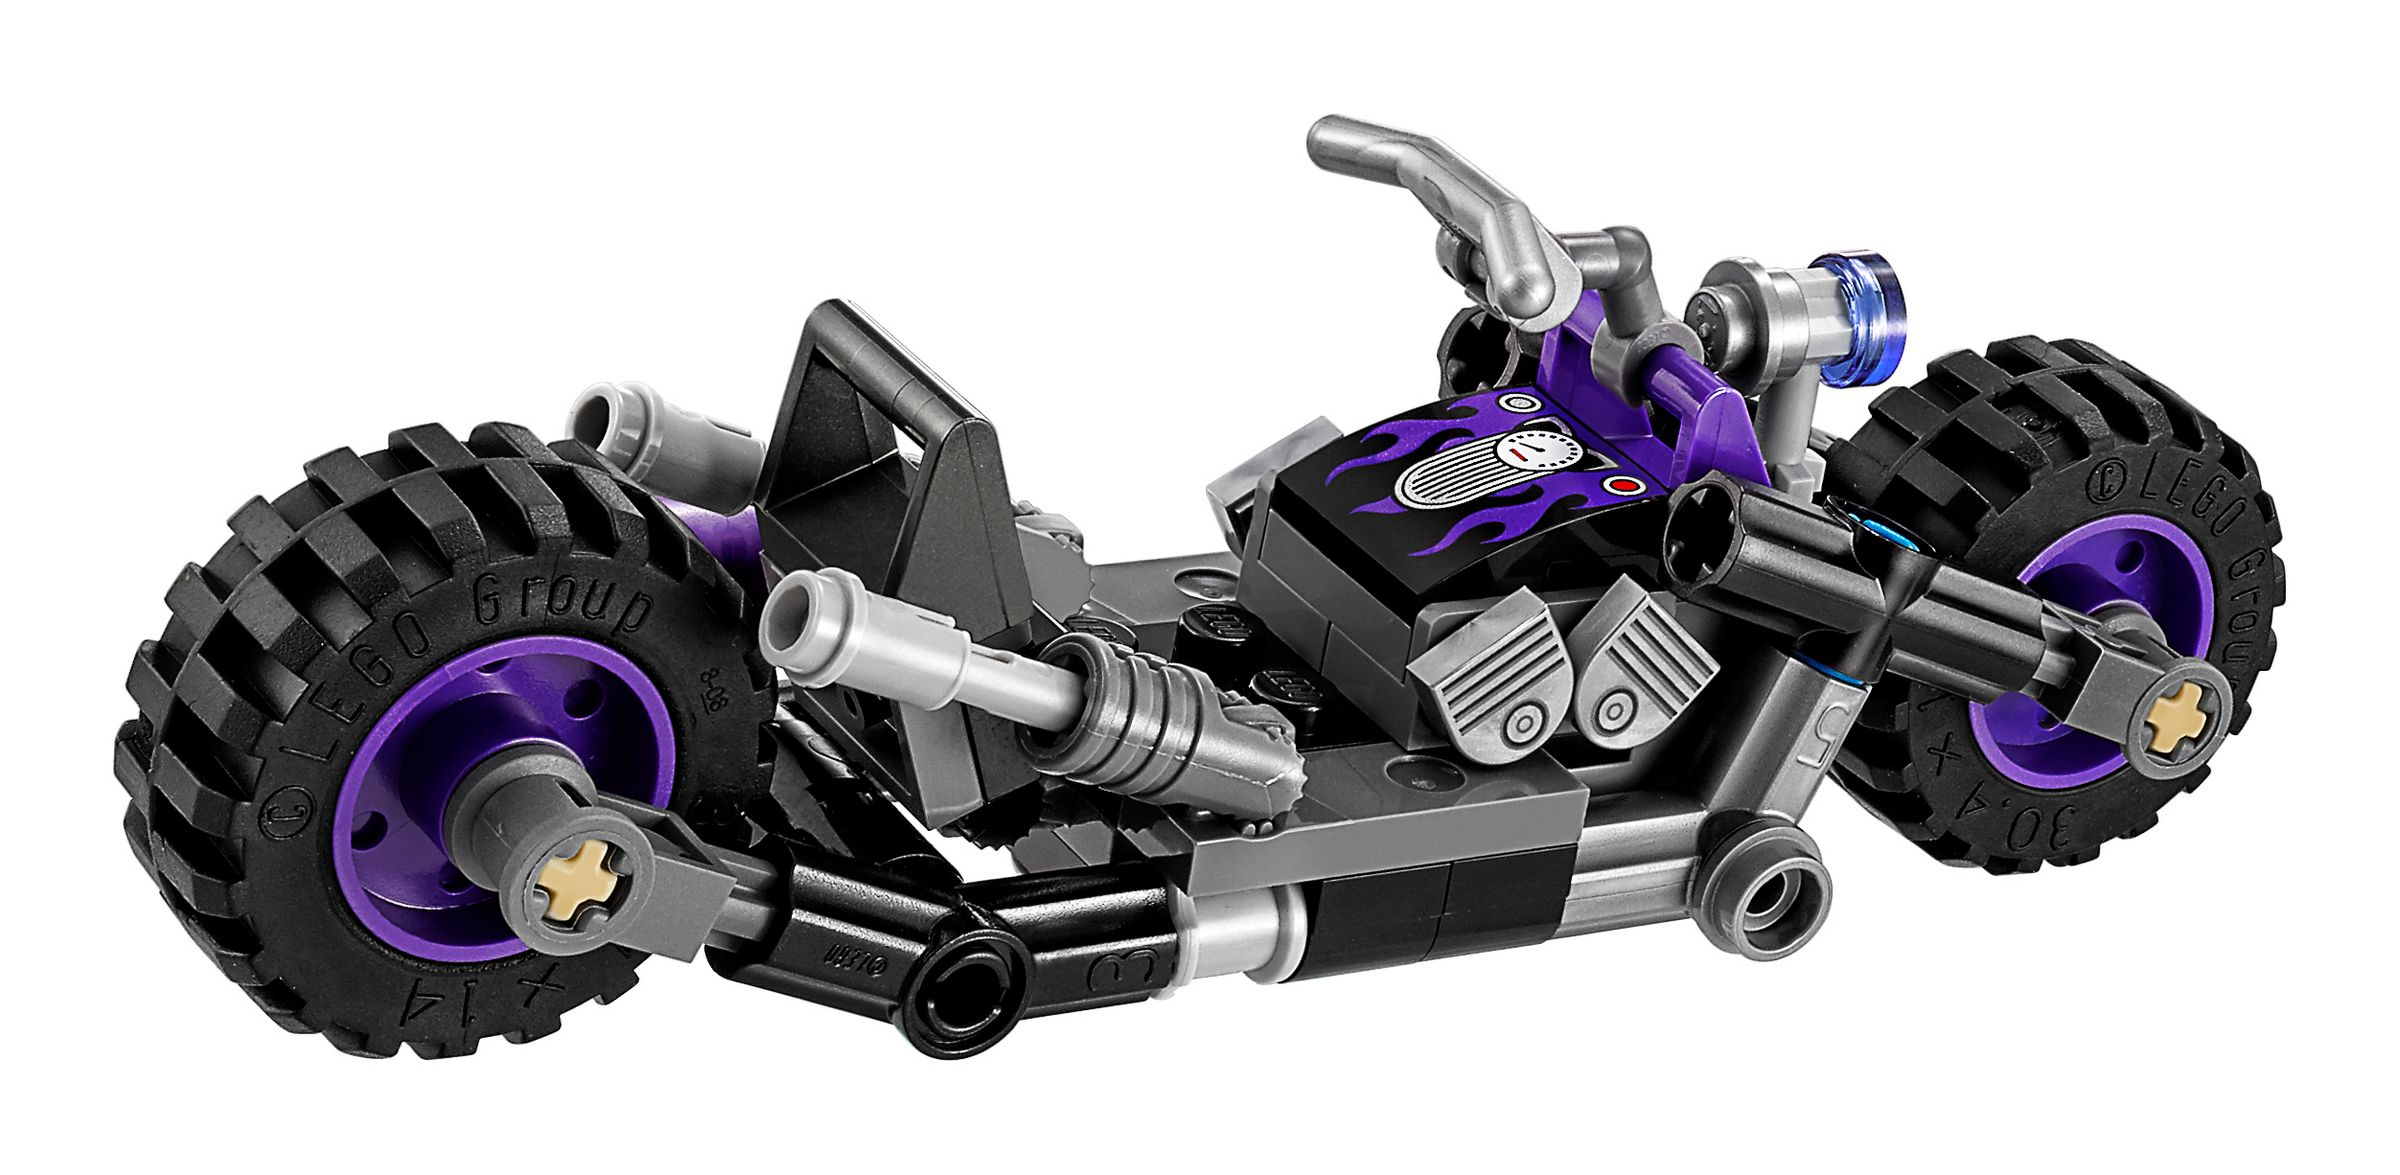 LEGO The LEGO Batman Movie 70902 Catwoman™: Catcycle-Verfolgungsjagd LEGO_70902_alt3.jpg